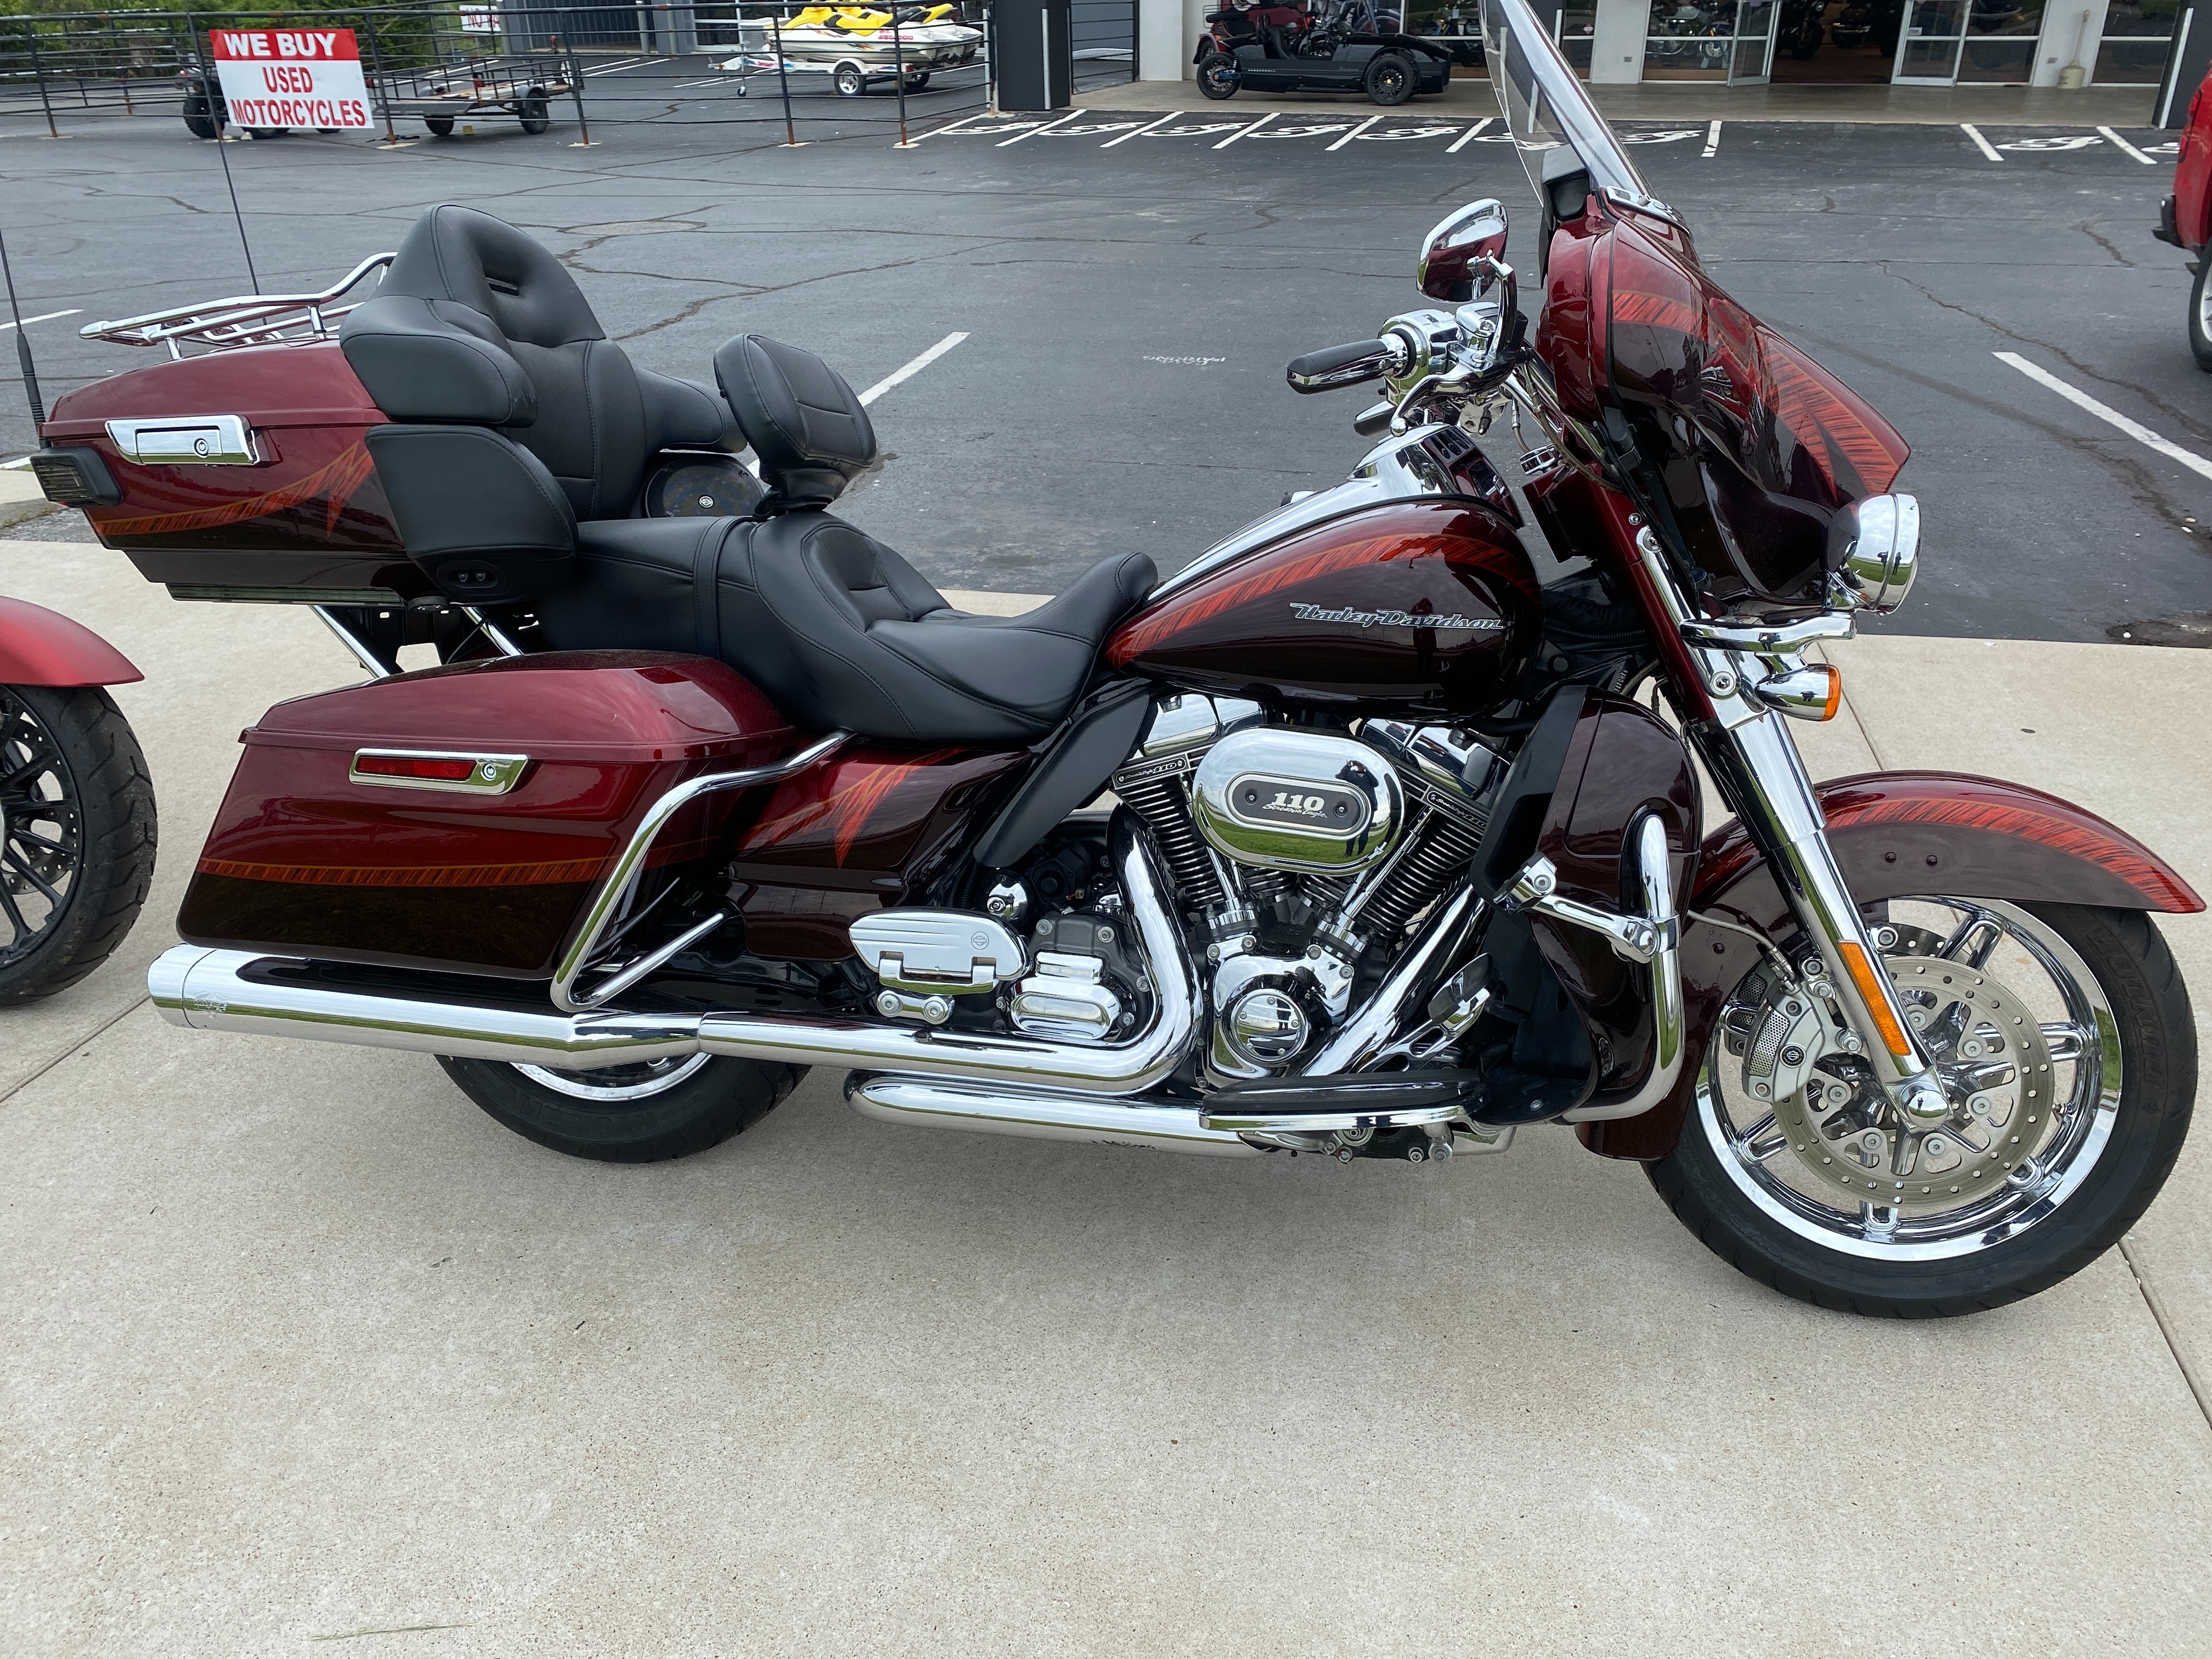 2014 Harley-Davidson Electra Glide CVO Limited at Youngblood RV & Powersports Springfield Missouri - Ozark MO